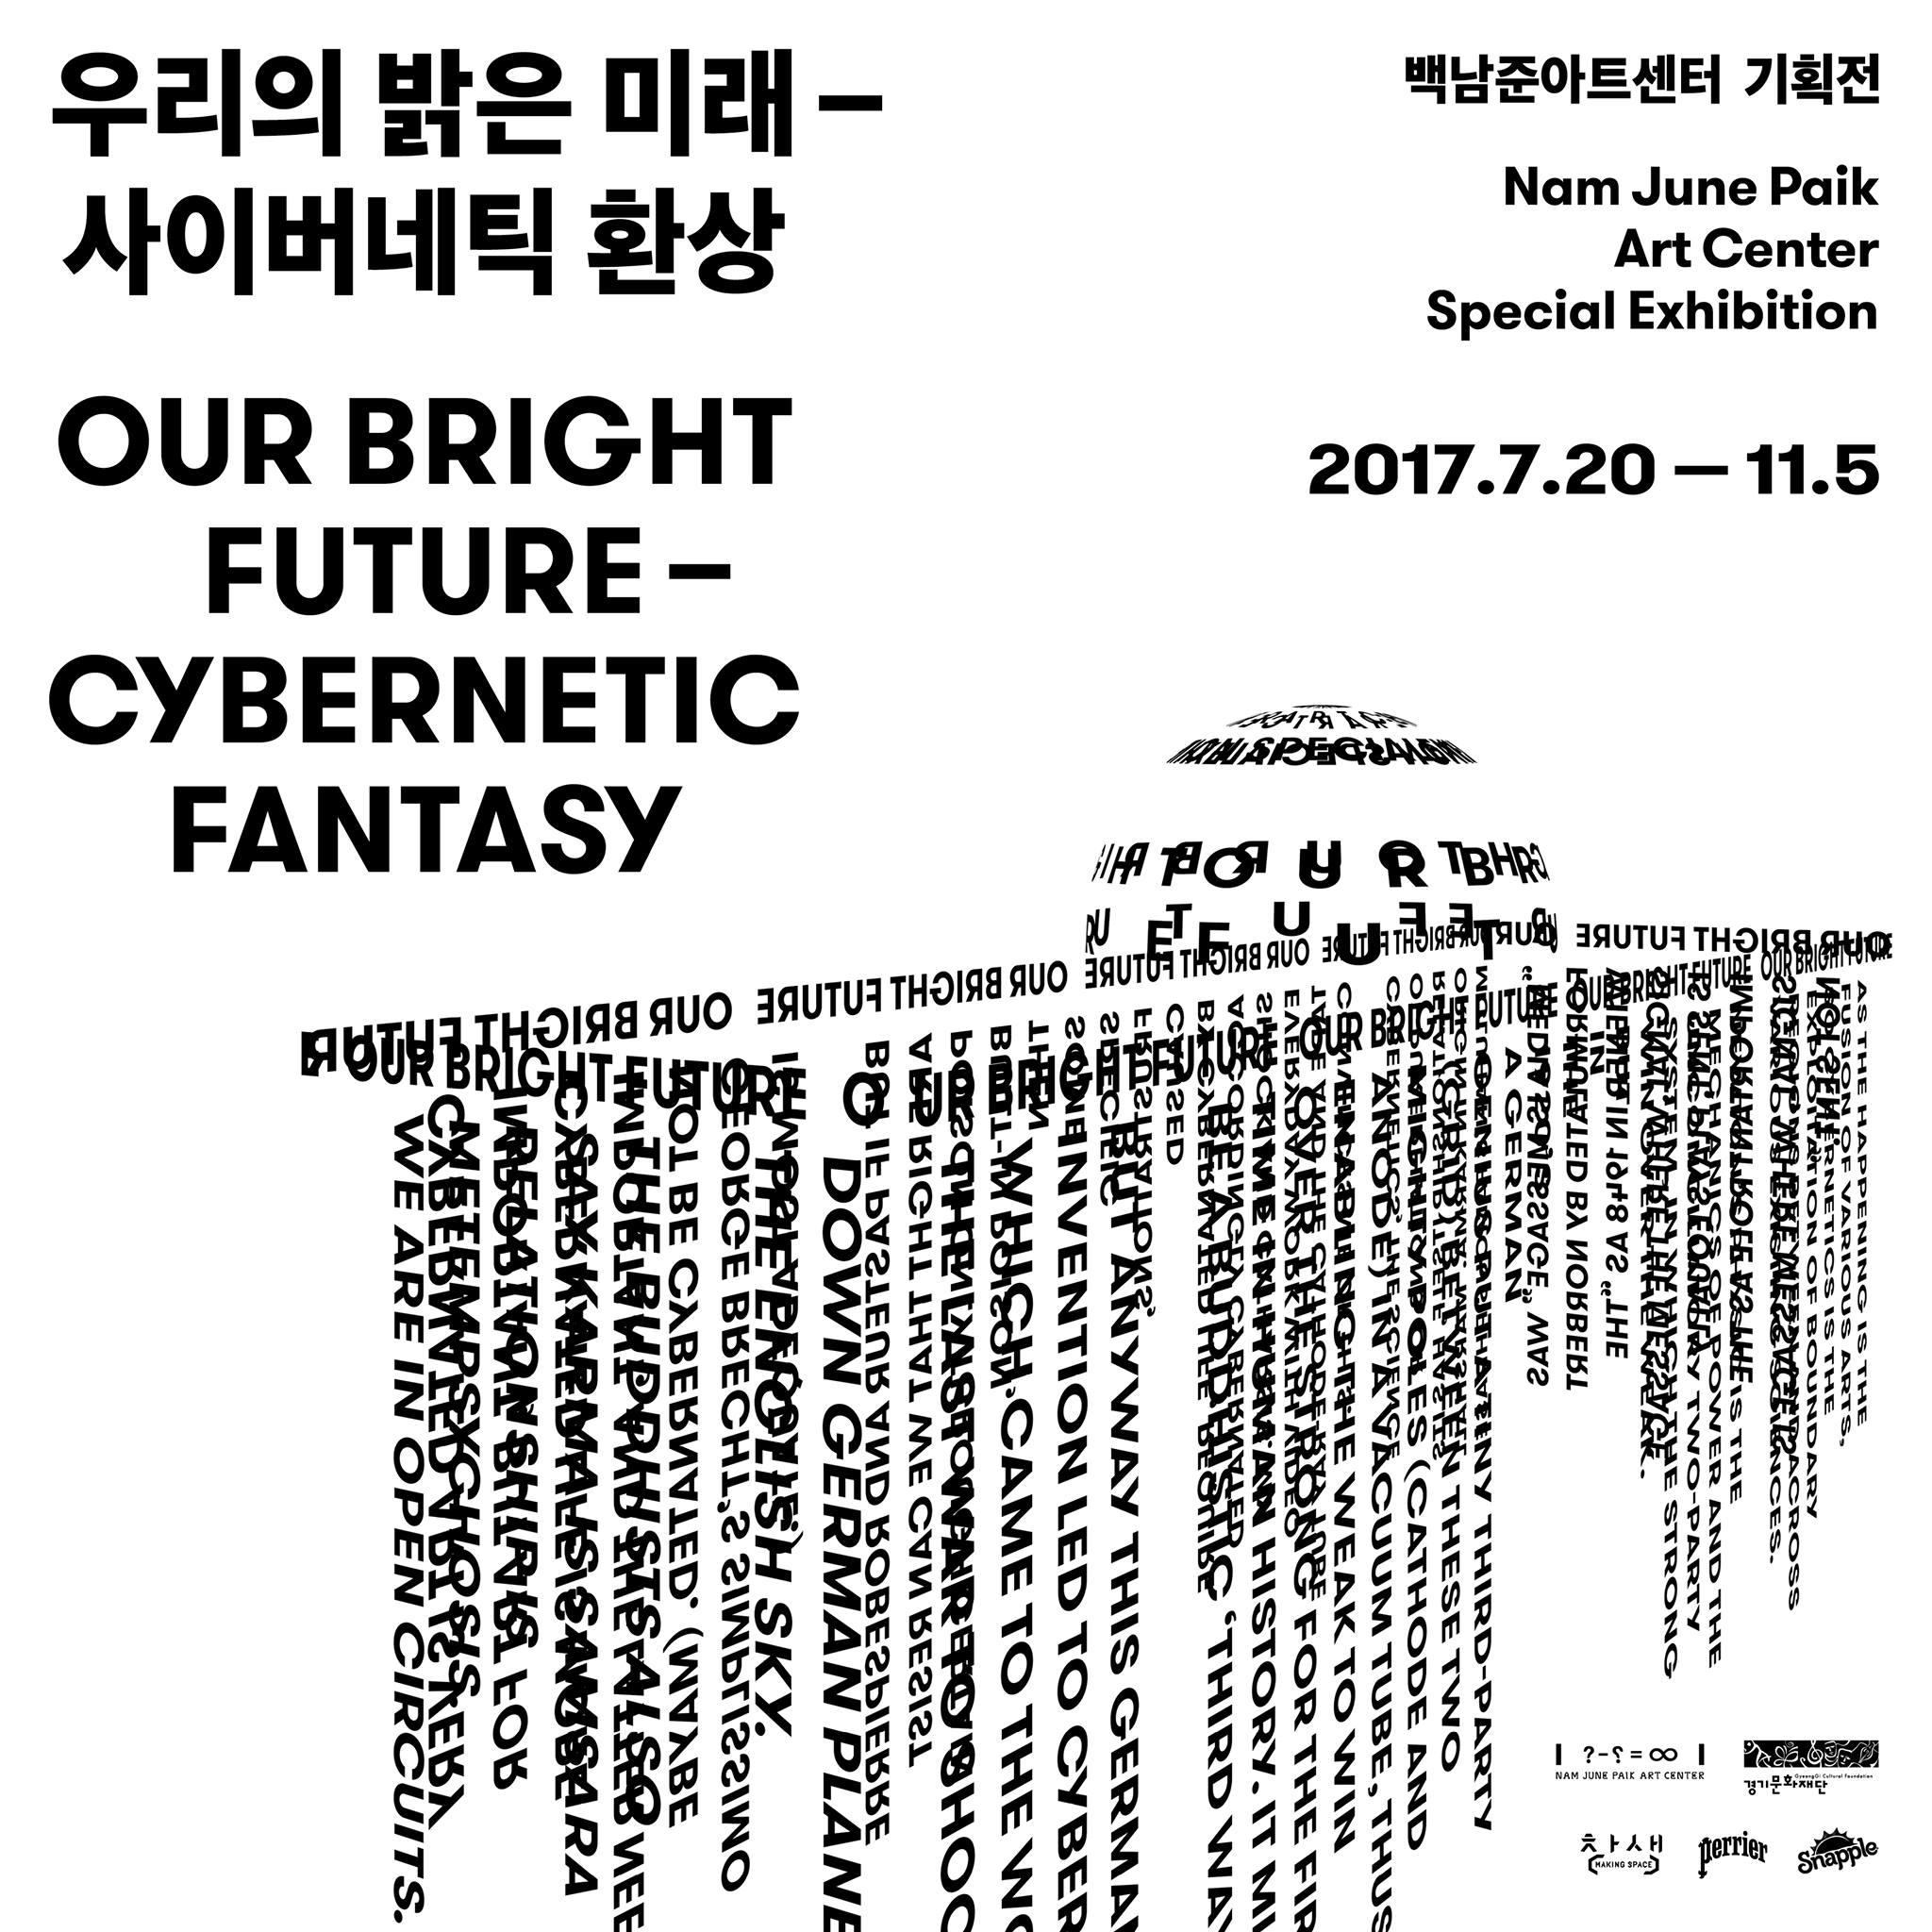 Our Bright Future - Cybernetic Fantasy, Nam June Paik Art Center